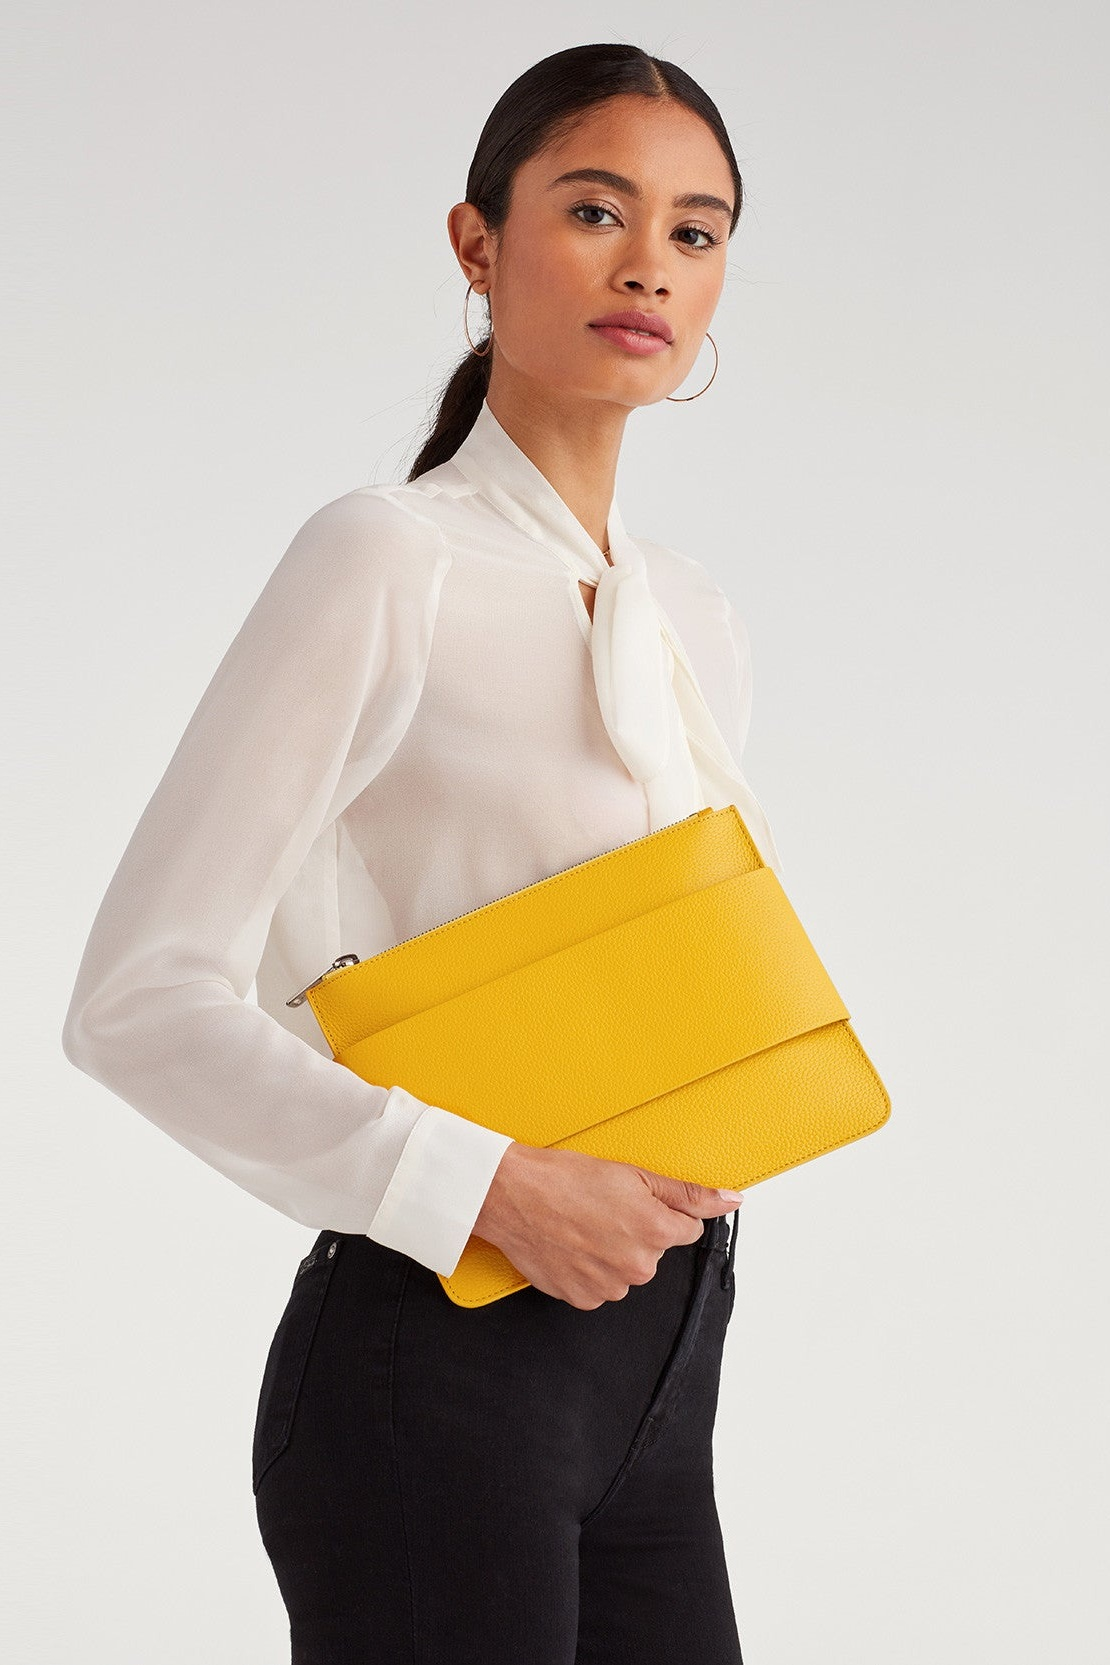 Mankind Clutch in Yellow, $57, 7 For All Mankind